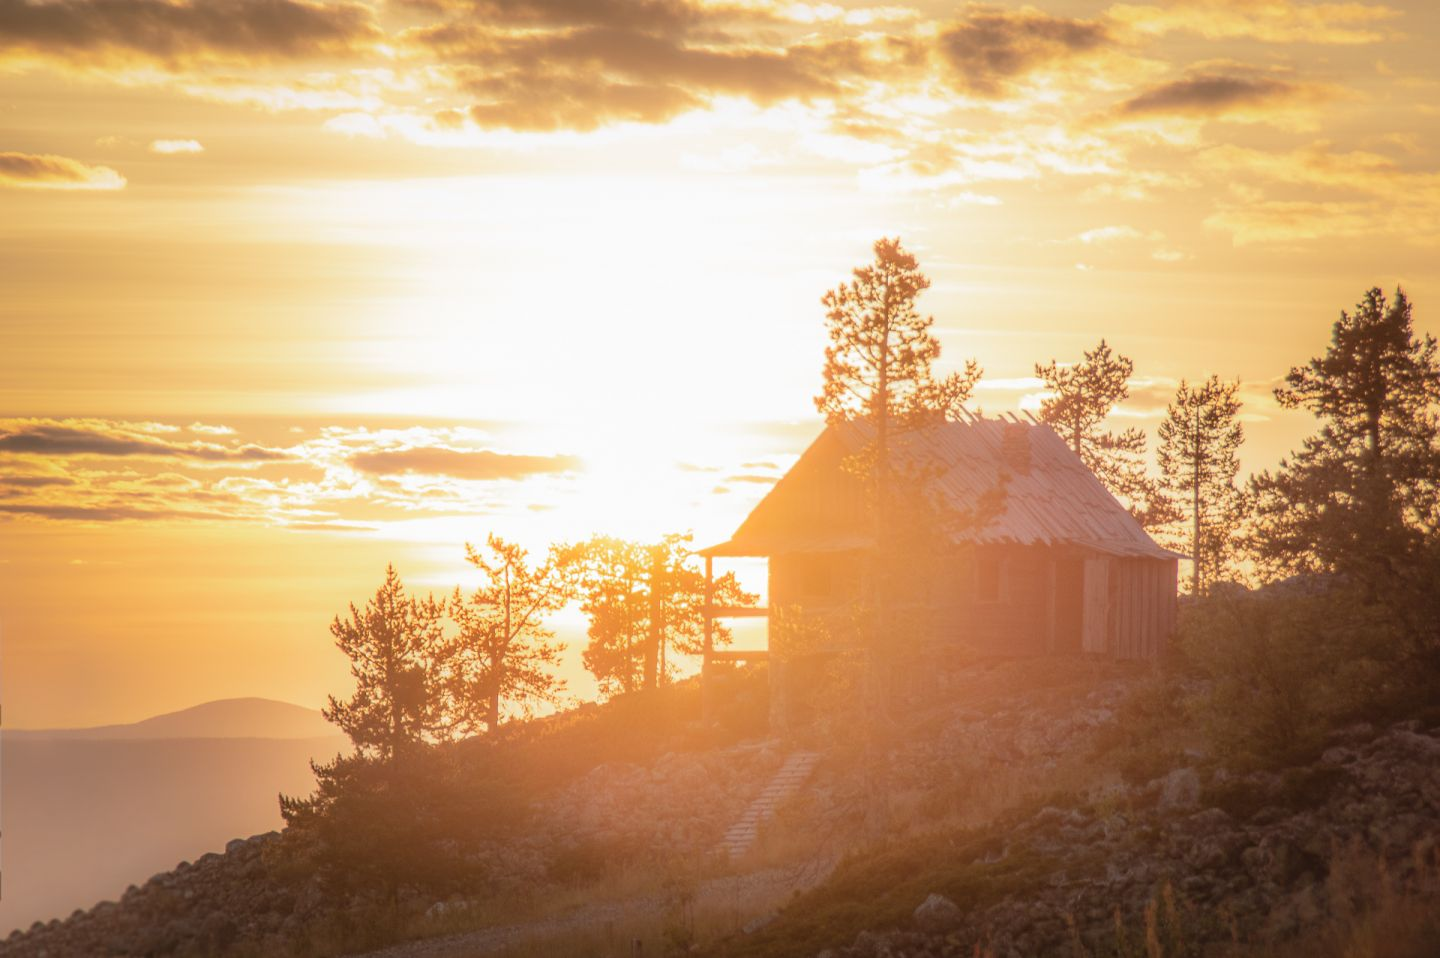 Summer holiday cottage in Levi, Finland